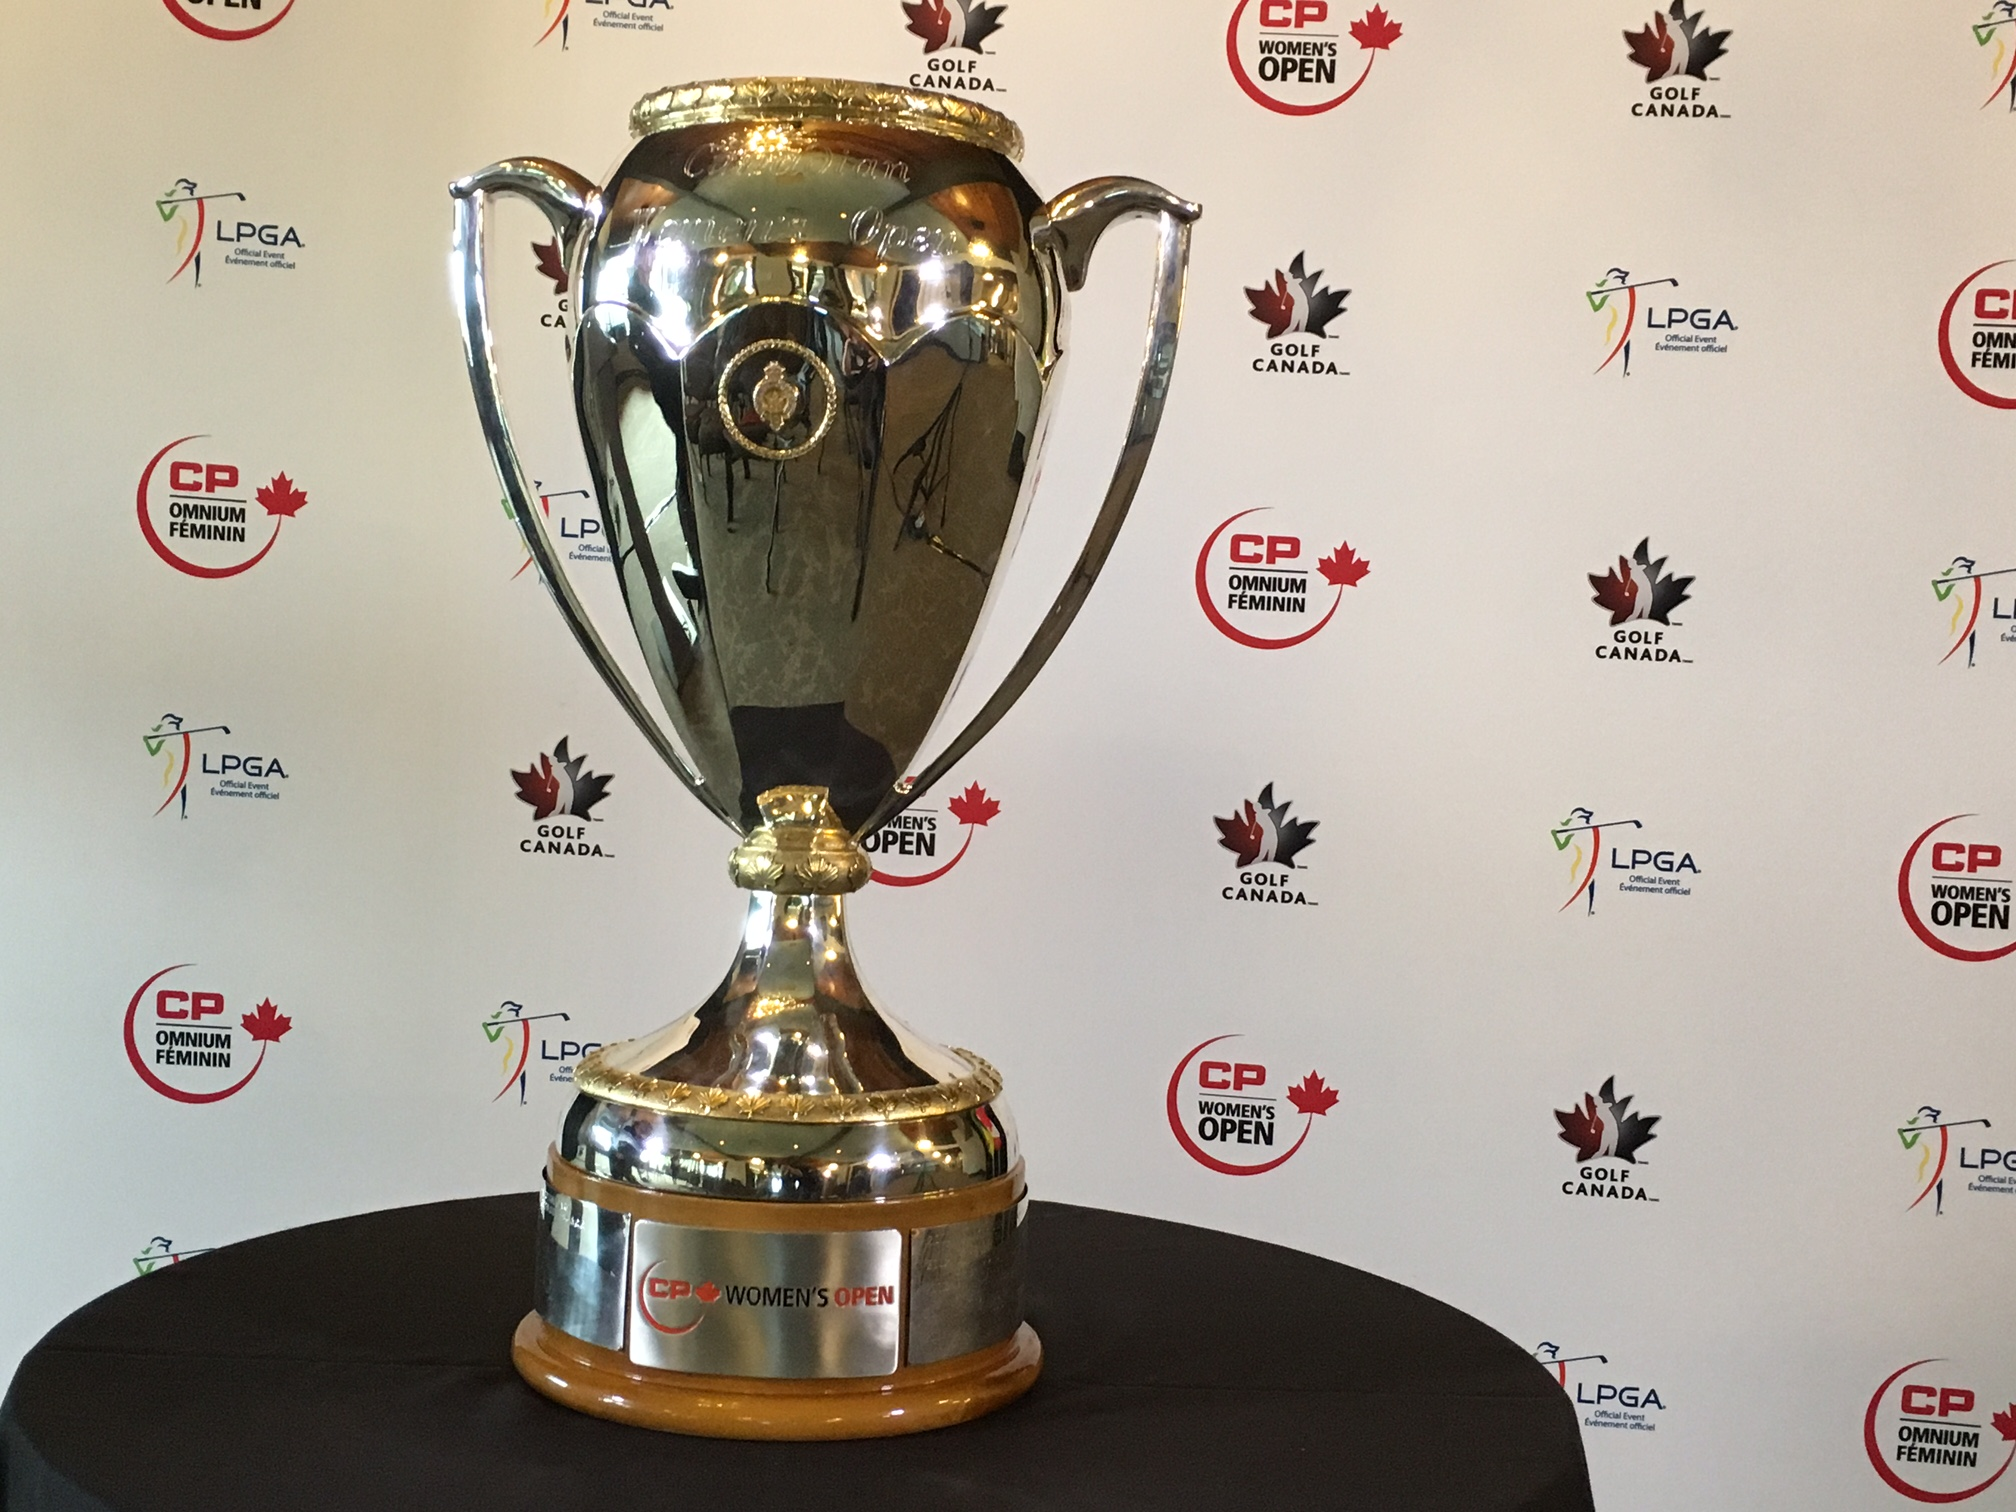 Regina to host 2018 LPGA Tour event